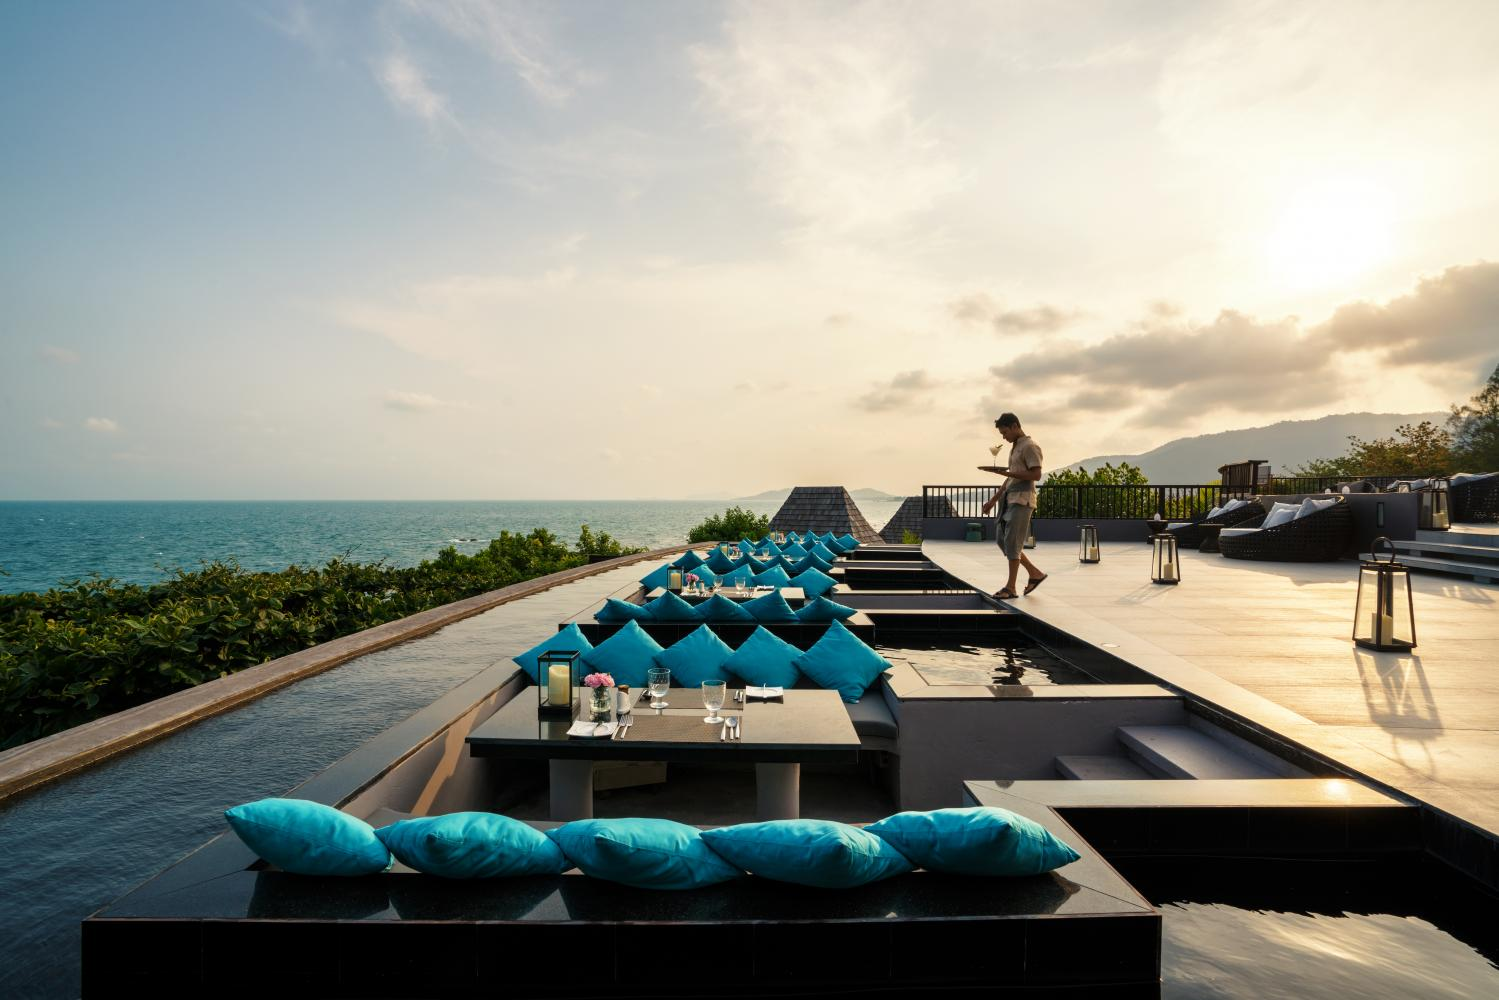 Silavadee Pool Spa Resort, Koh Samui